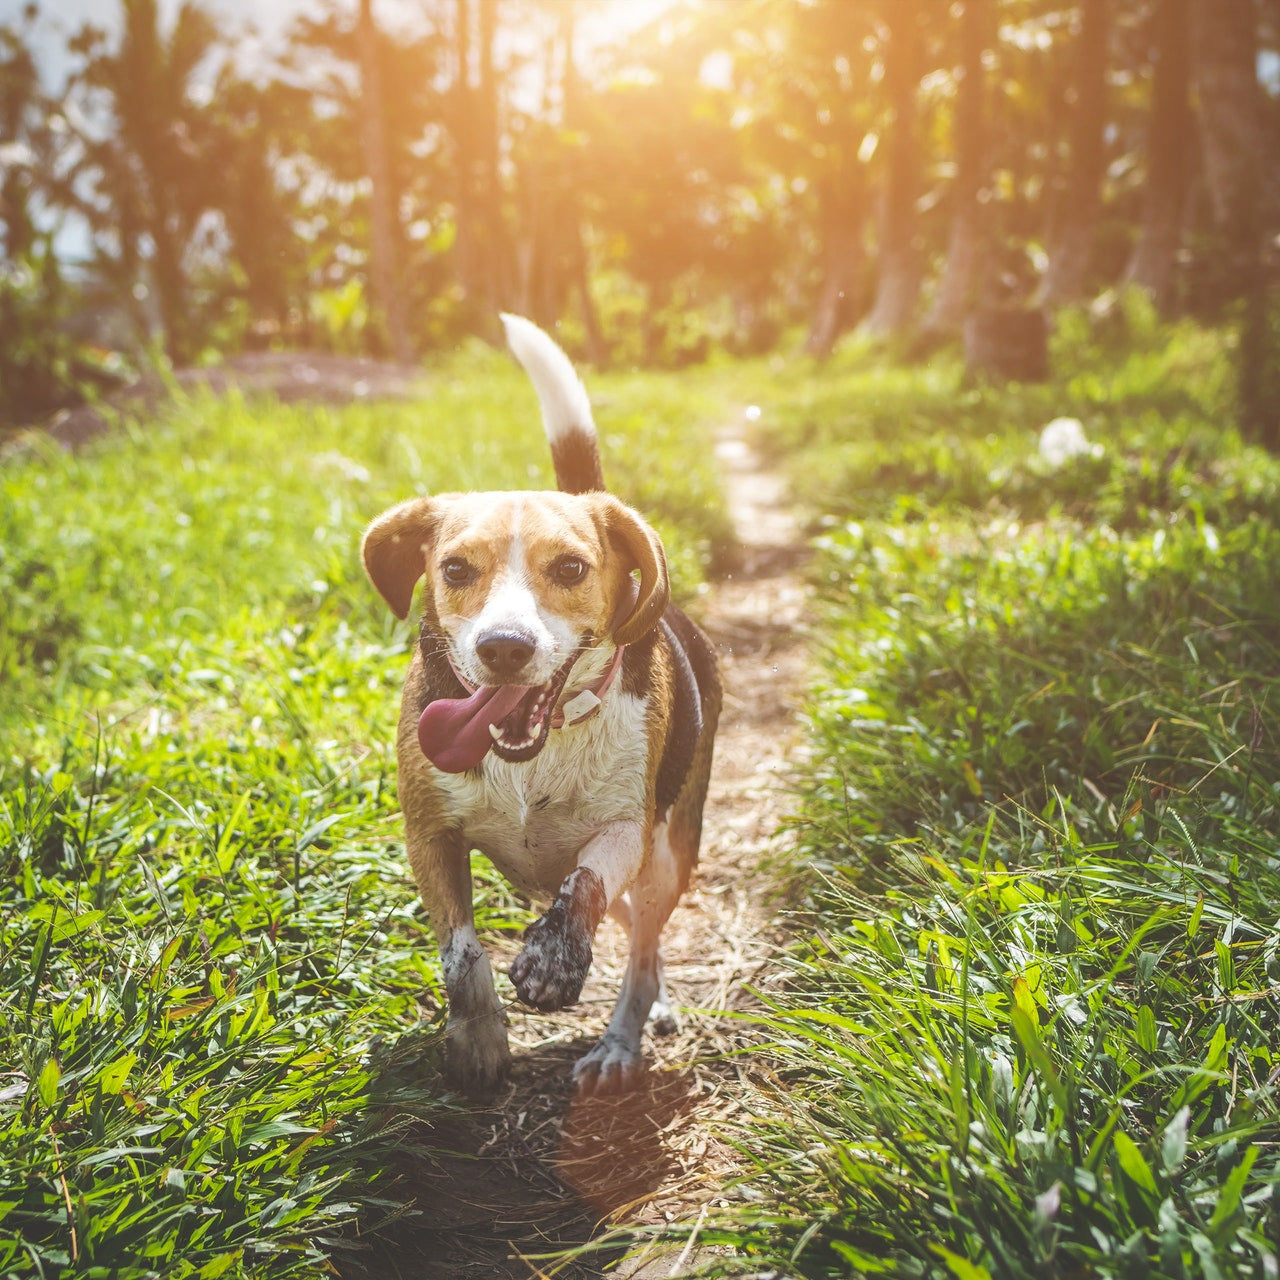 Exercise for dogs 101: Keeping your pup in shape